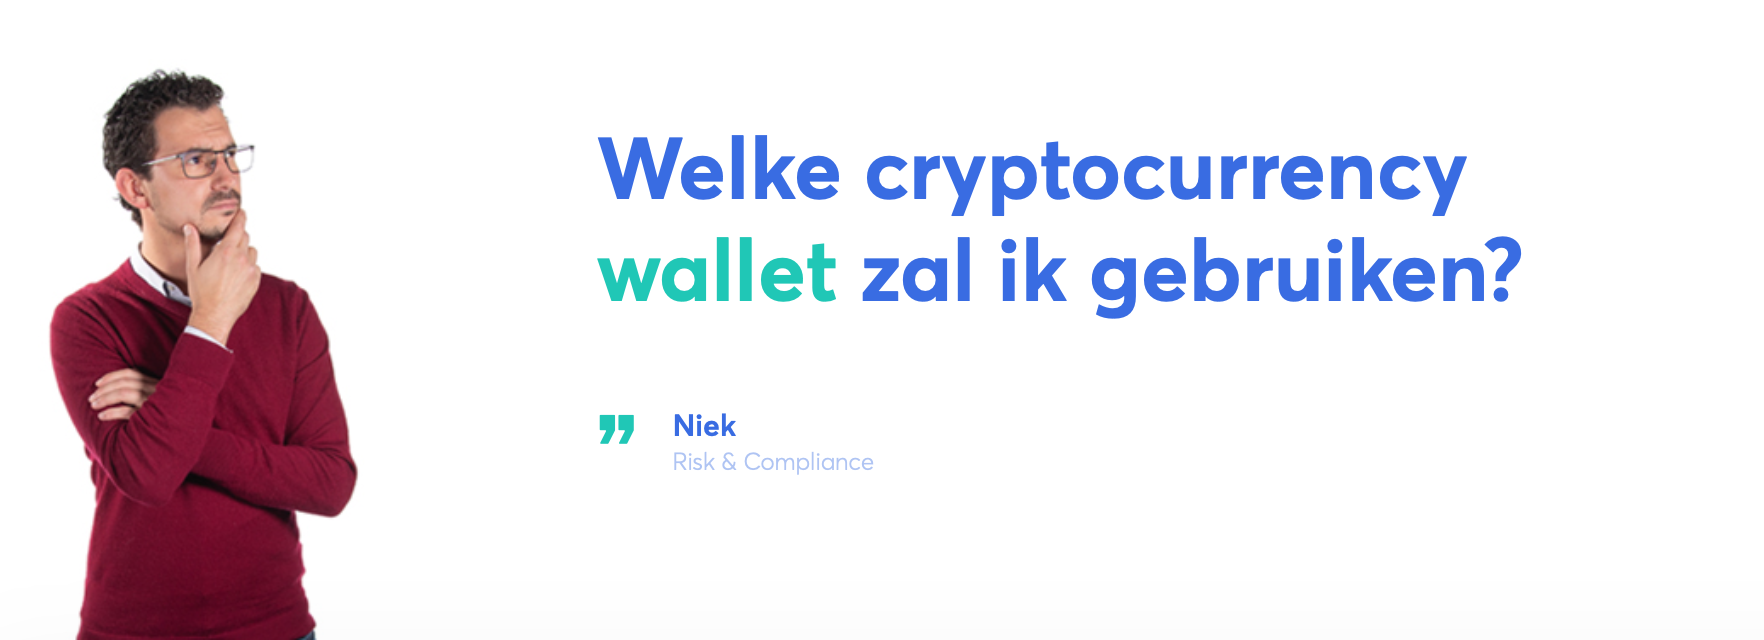 Anycoin wallet